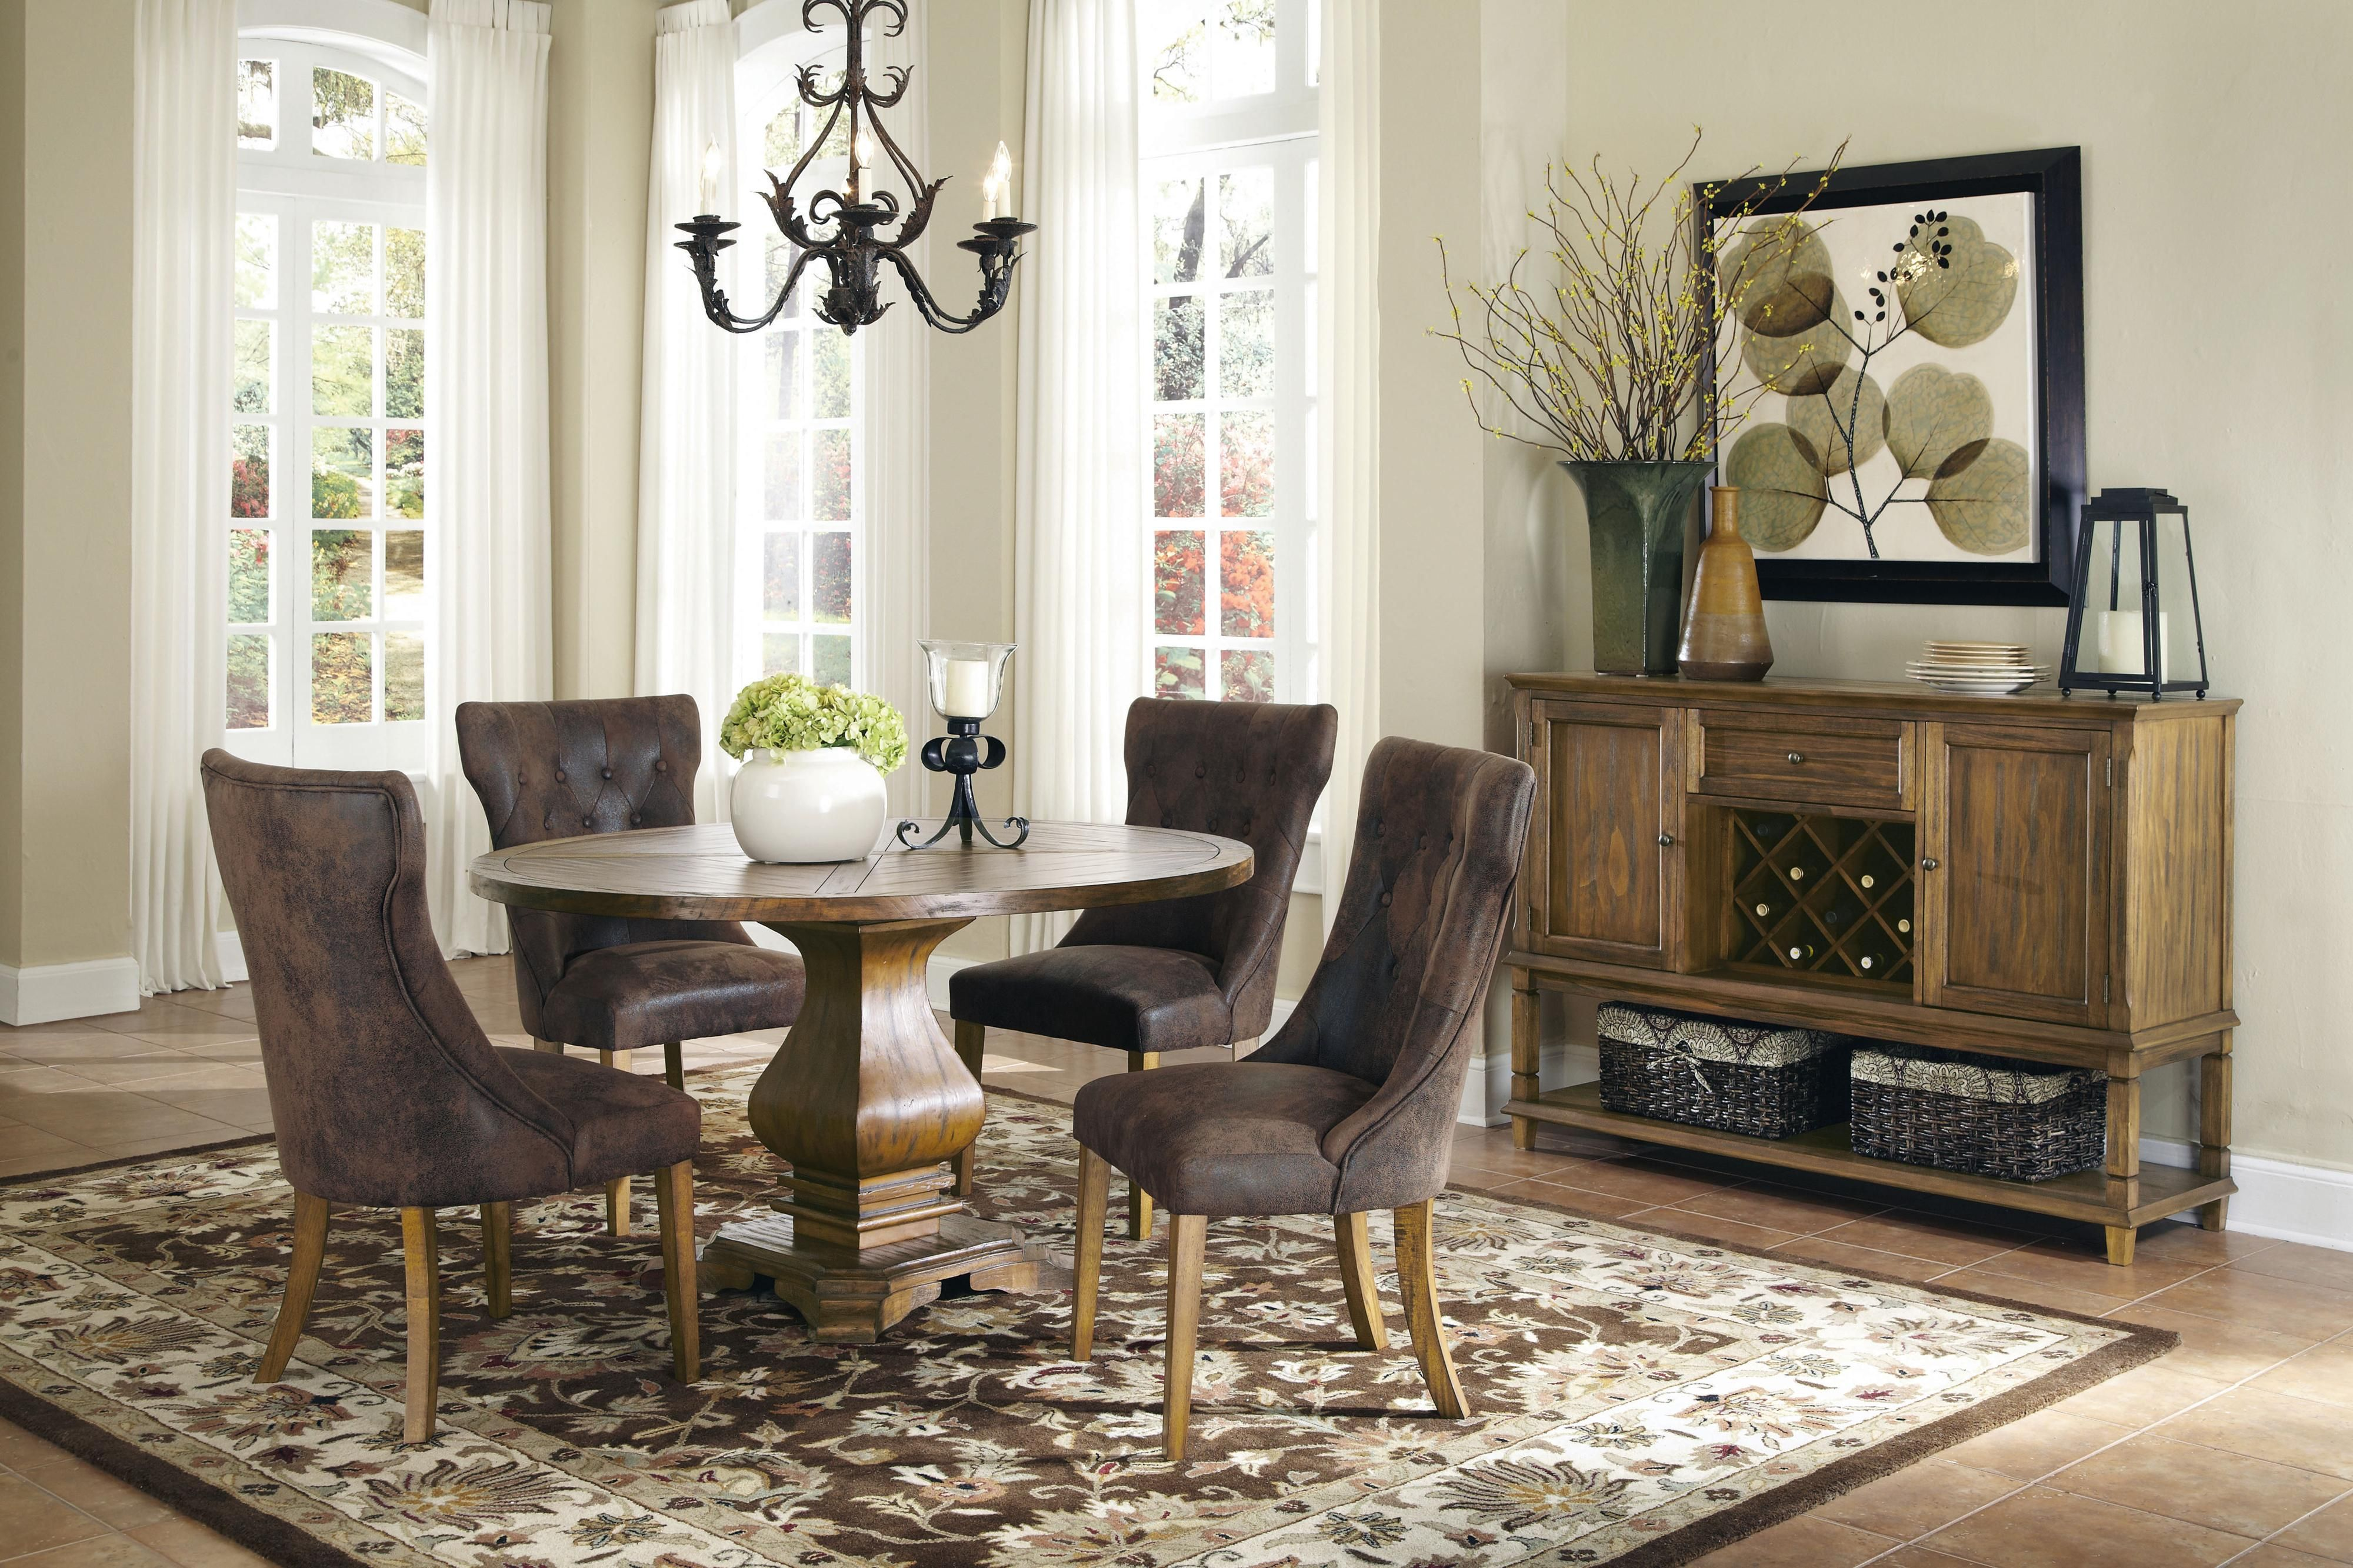 Round dining table and chairs for 4  Parkins collection will help you create a sophisticated and